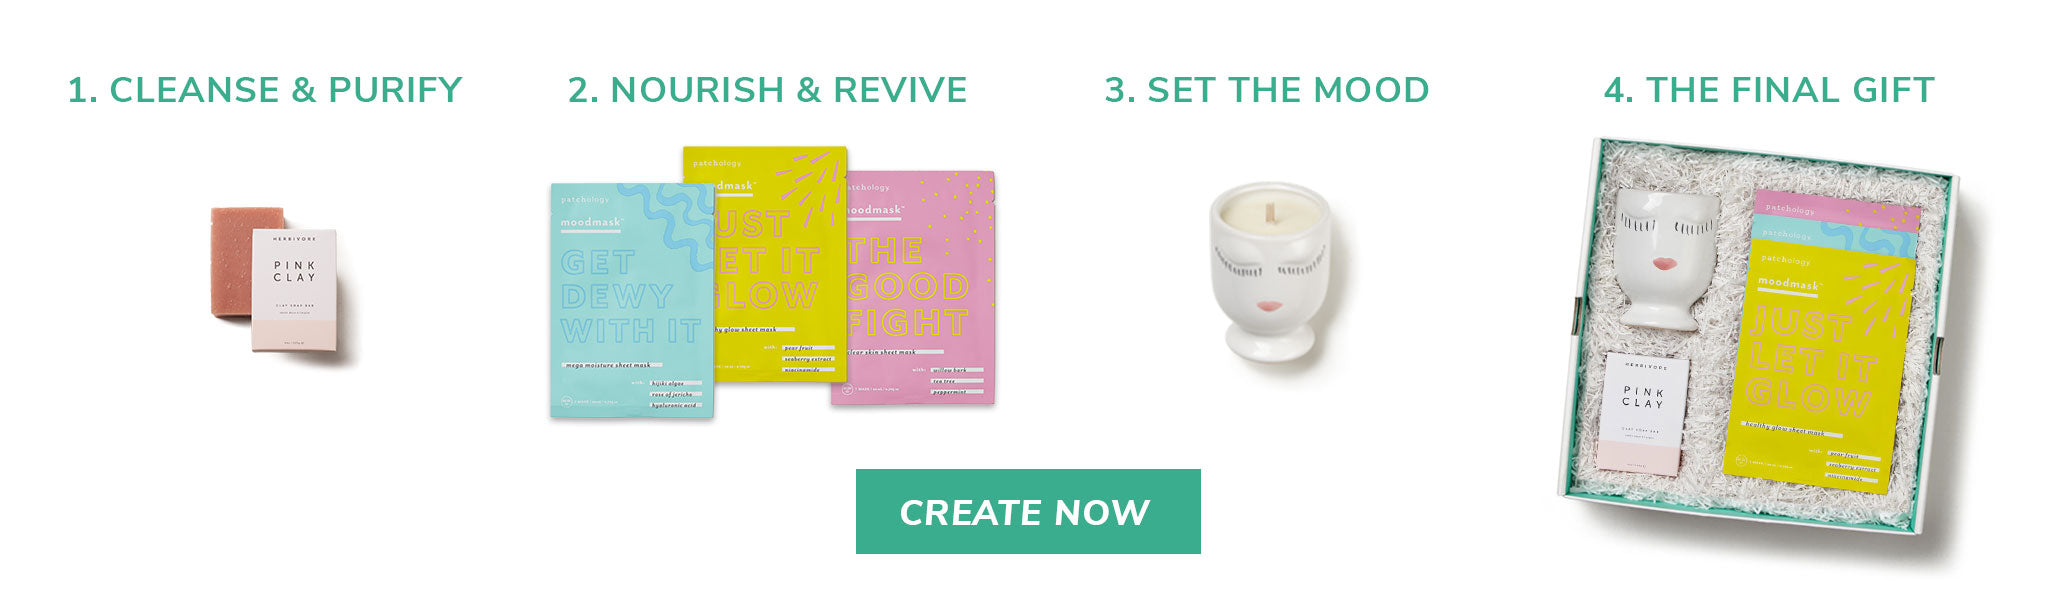 Unique Spa Gift Sets For Women Luxury Bath Gift Sets And Baskets Knack